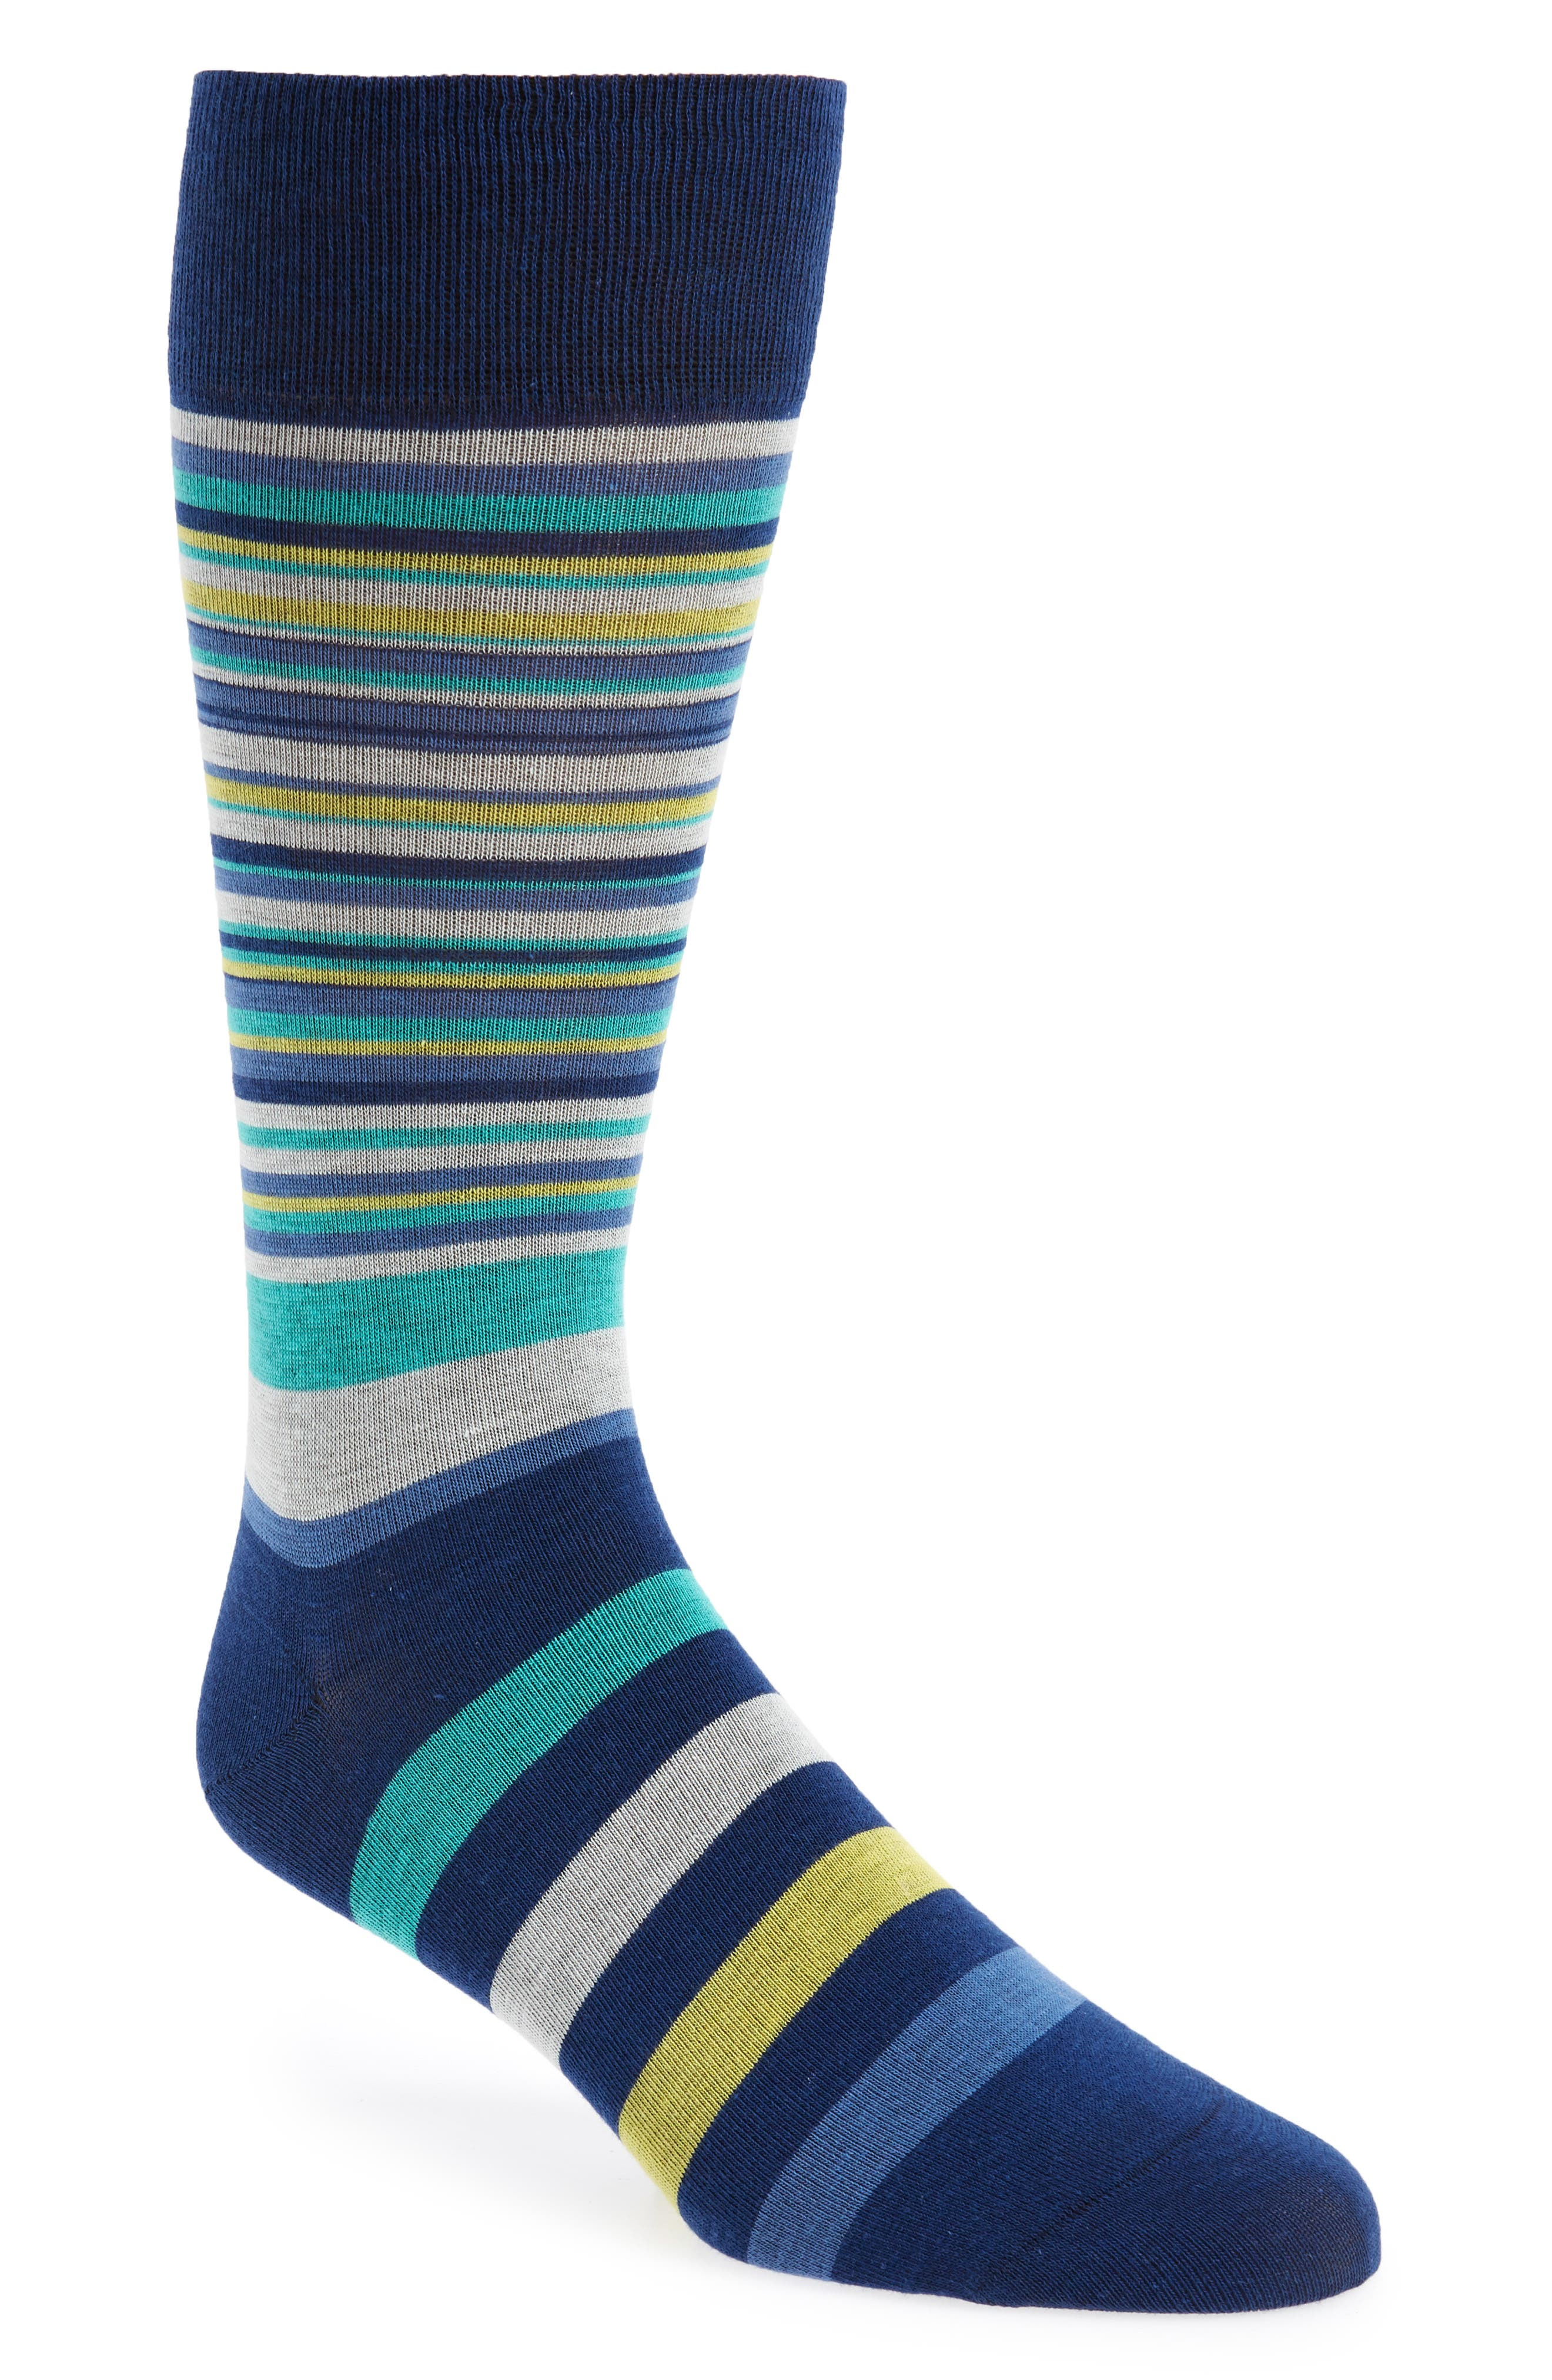 Town Stripe Crew Socks,                             Main thumbnail 1, color,                             Navy Peony